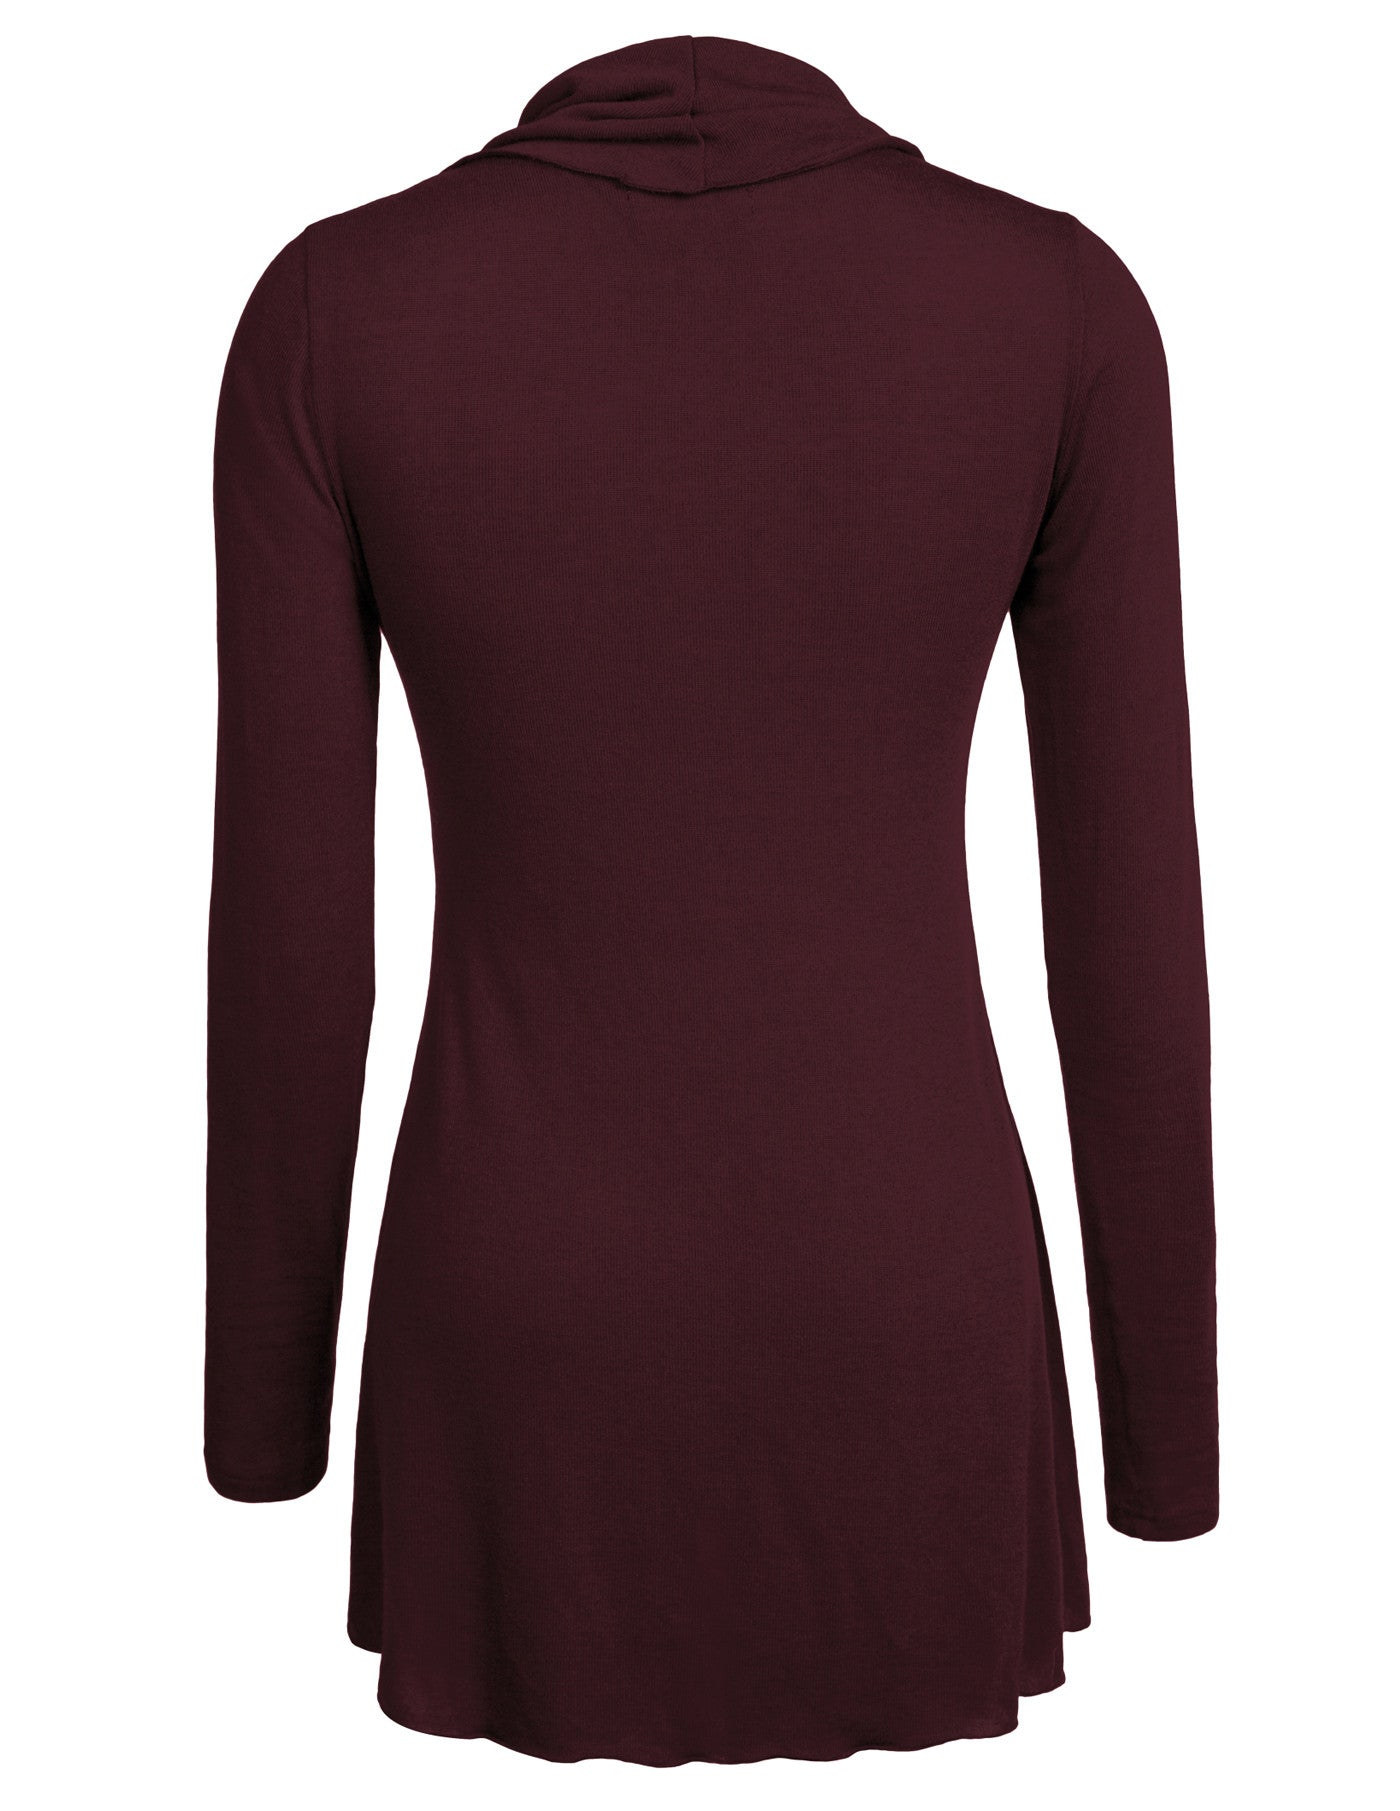 23c54b27d07 Ninedaily Womens Basic Long Sleeve Cowl Neck Solid Flare Tunic Tops for  Leggings Casual Blouse 743140691386